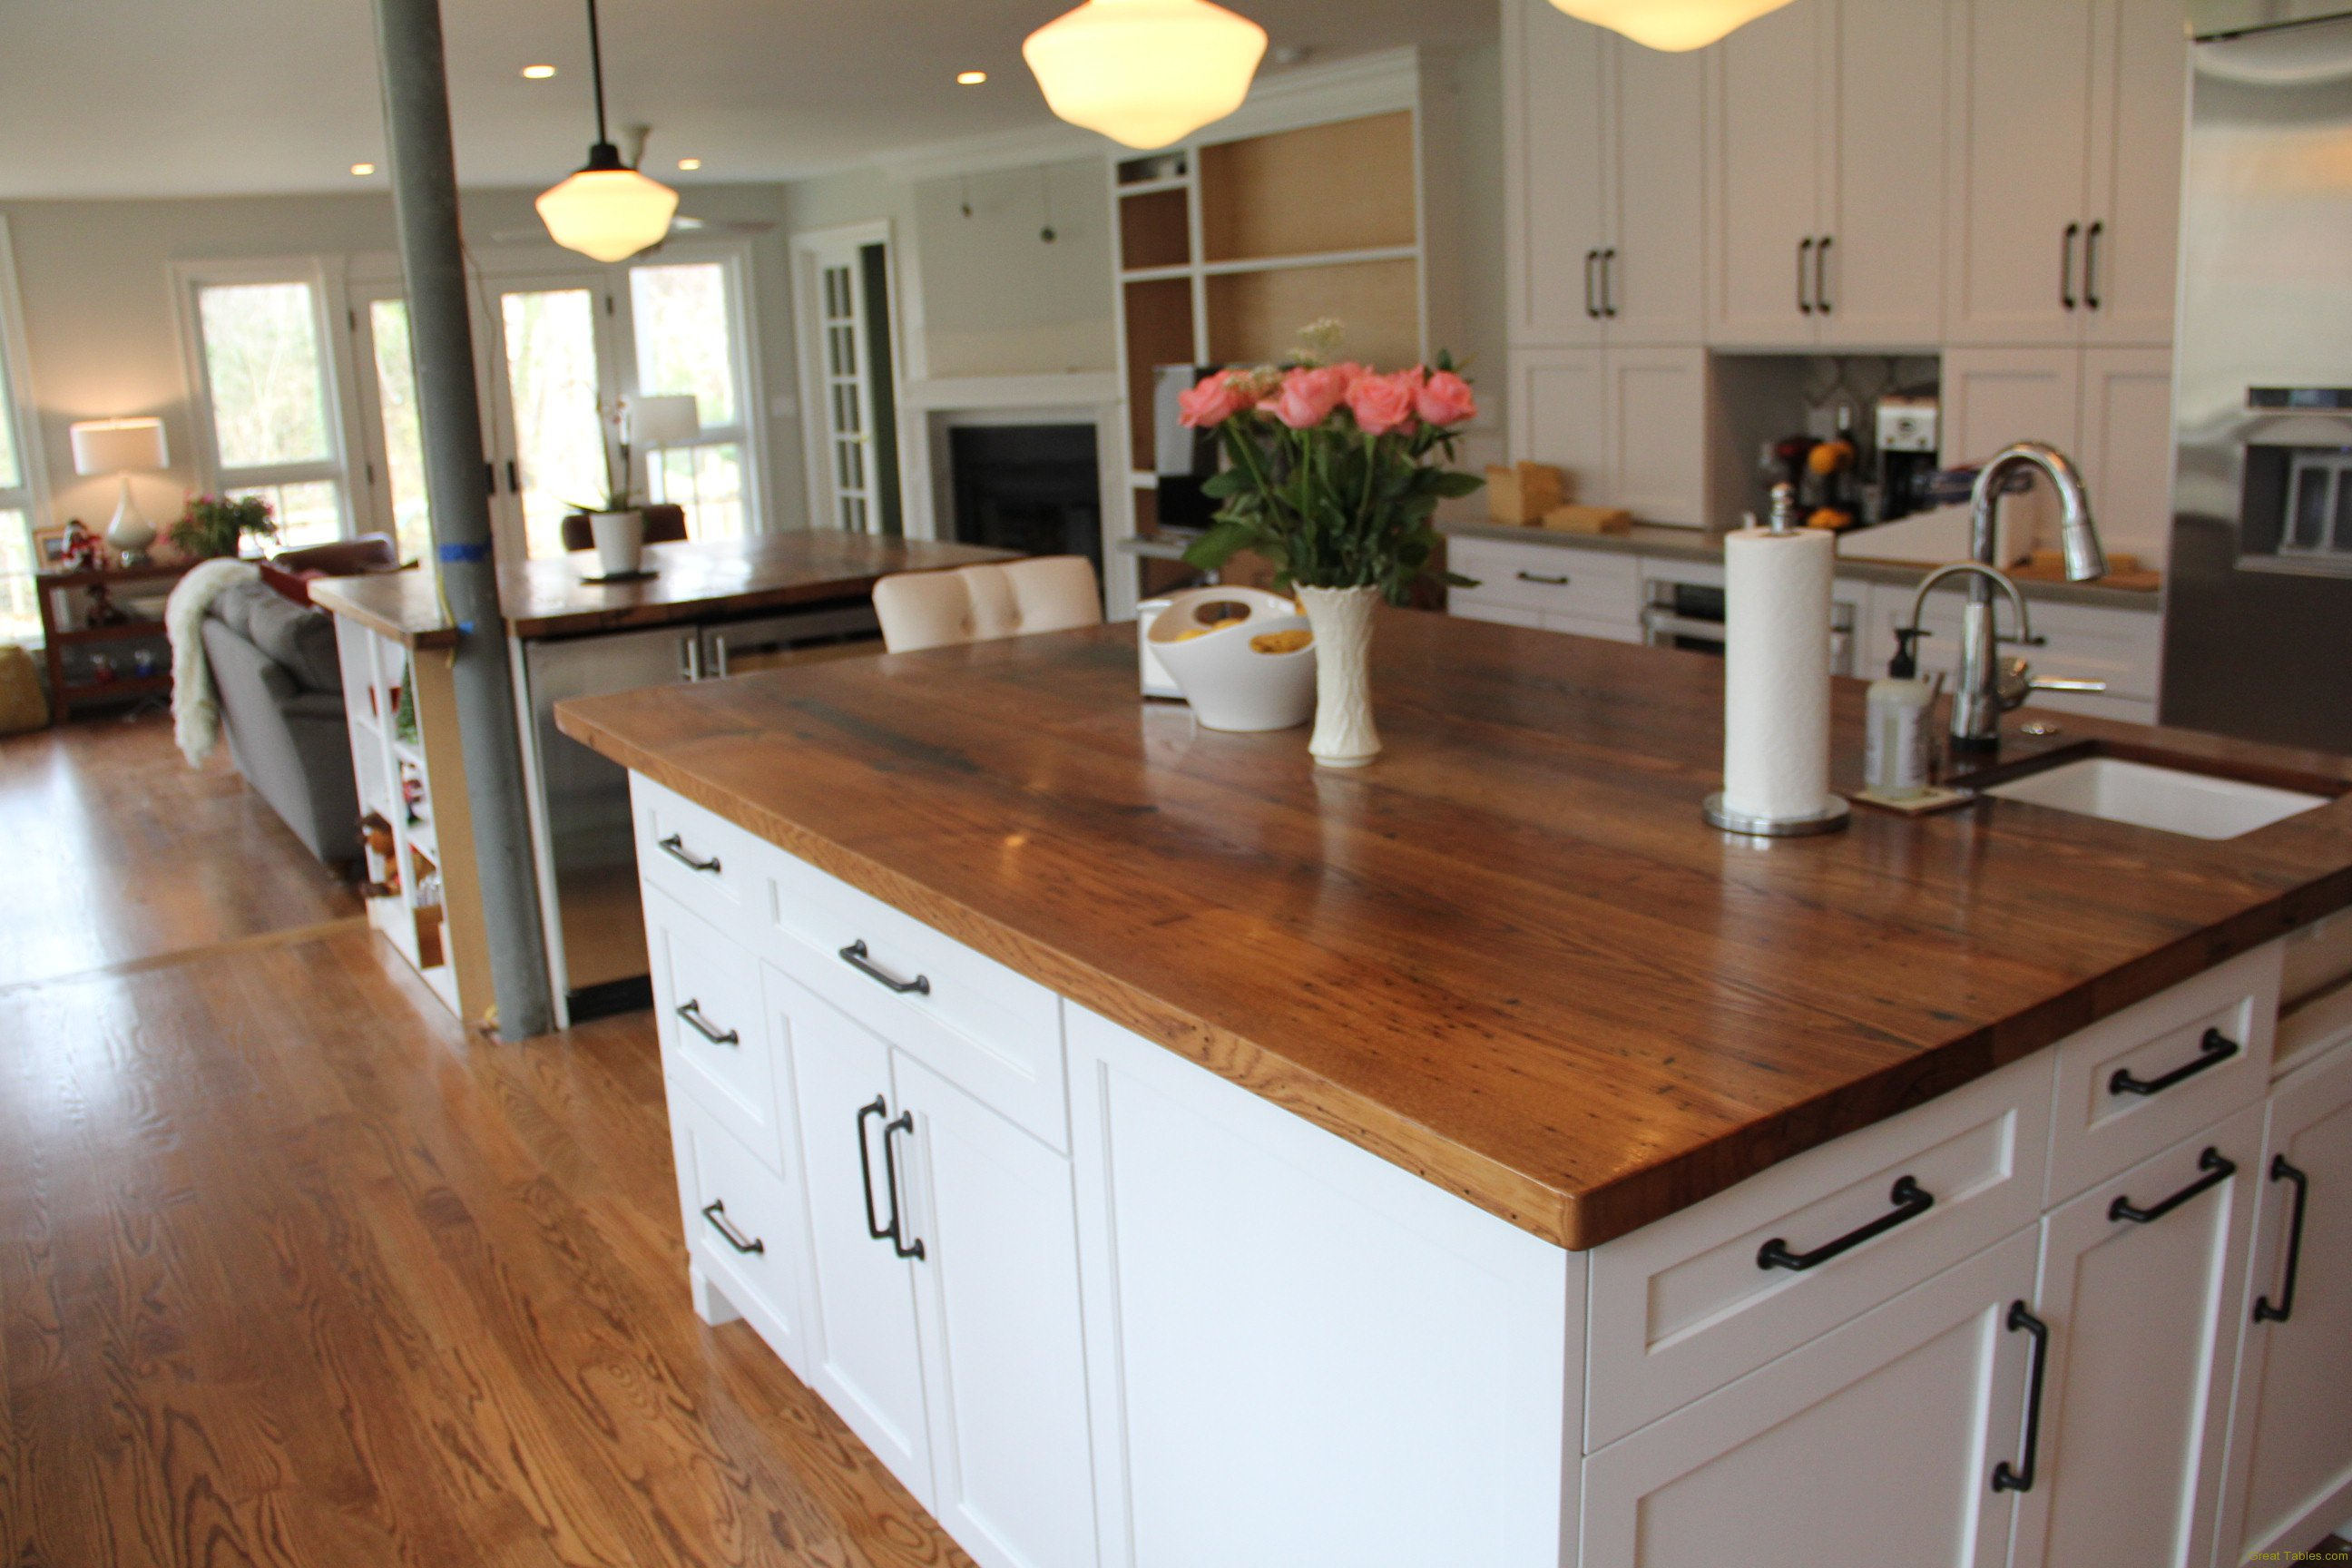 kitchen wooden furniture. Chestnut Kitchen Counter Top3 Wooden Furniture K